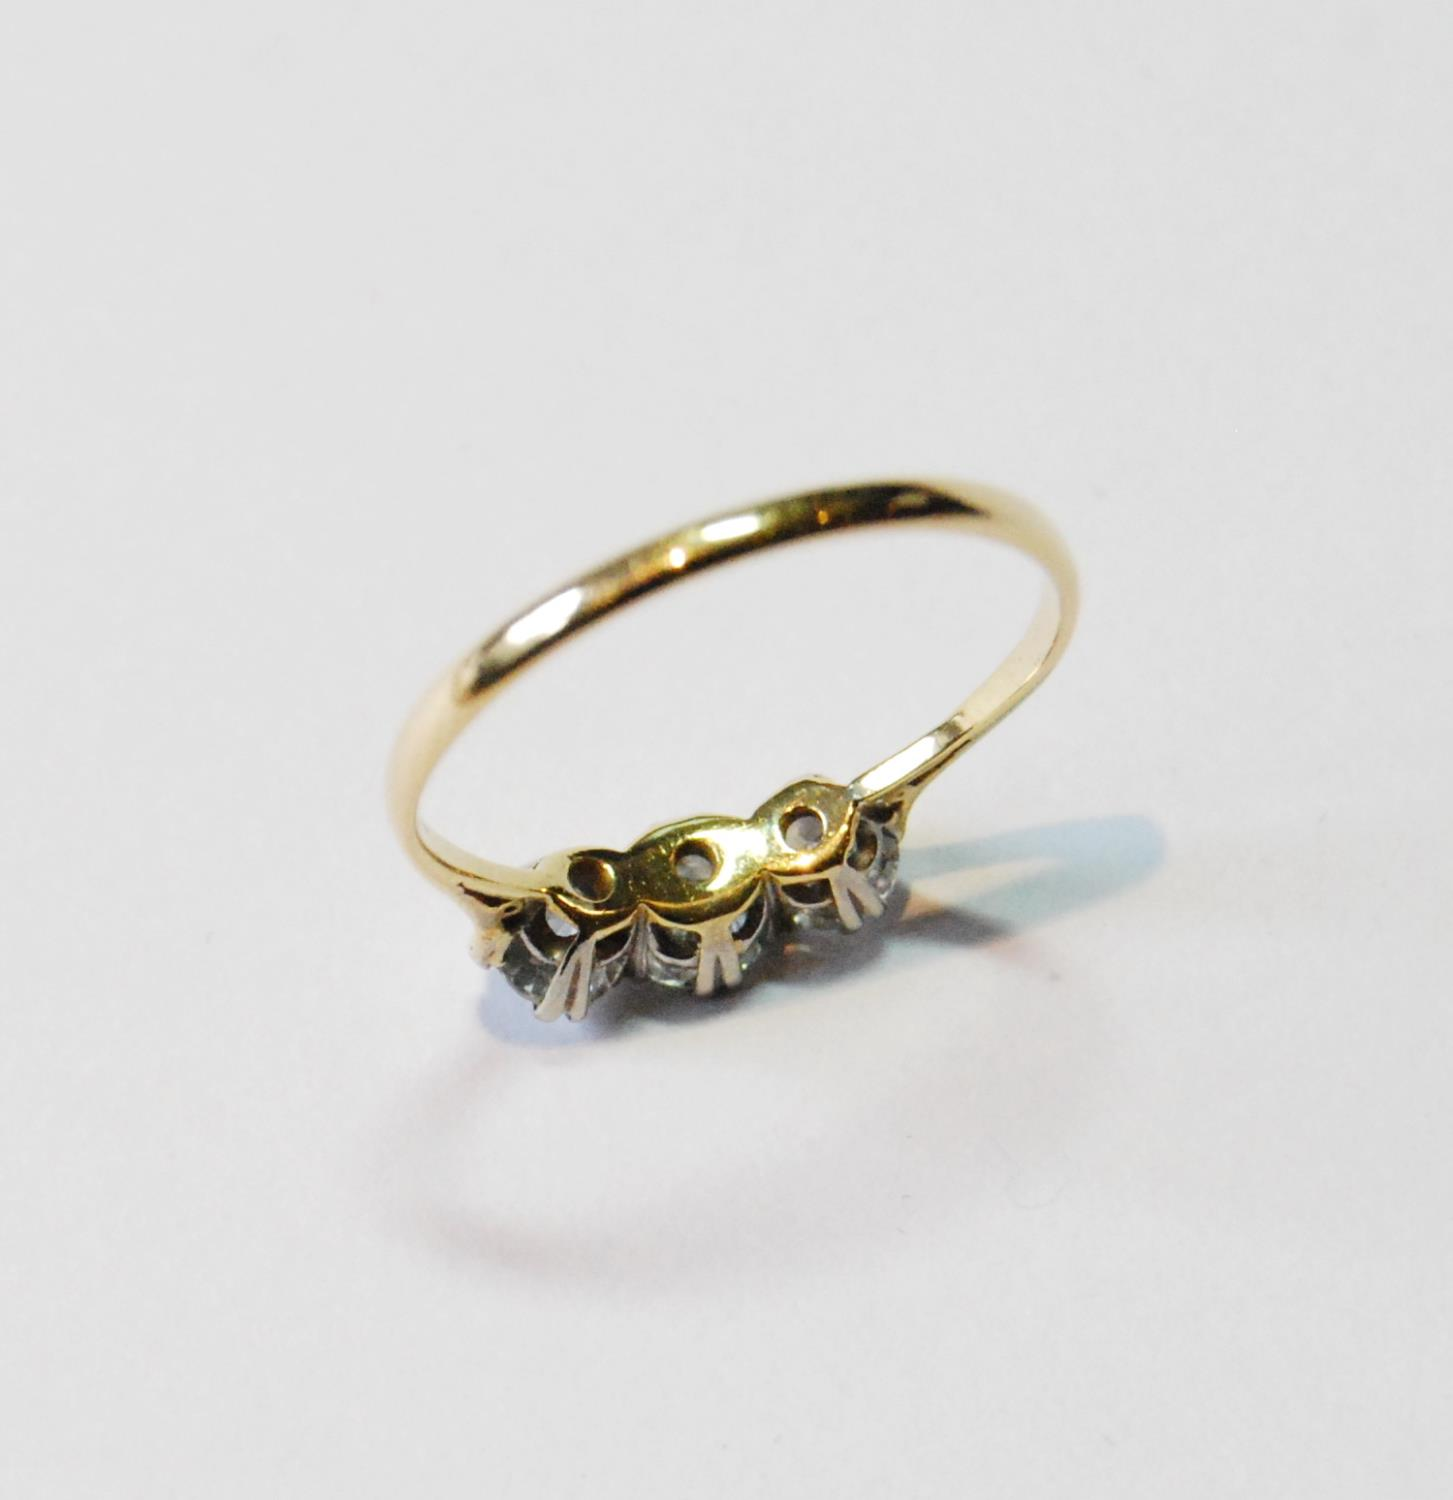 Diamond three-stone ring, the largest brilliant approximately .5ct, in gold, size P. - Image 3 of 3